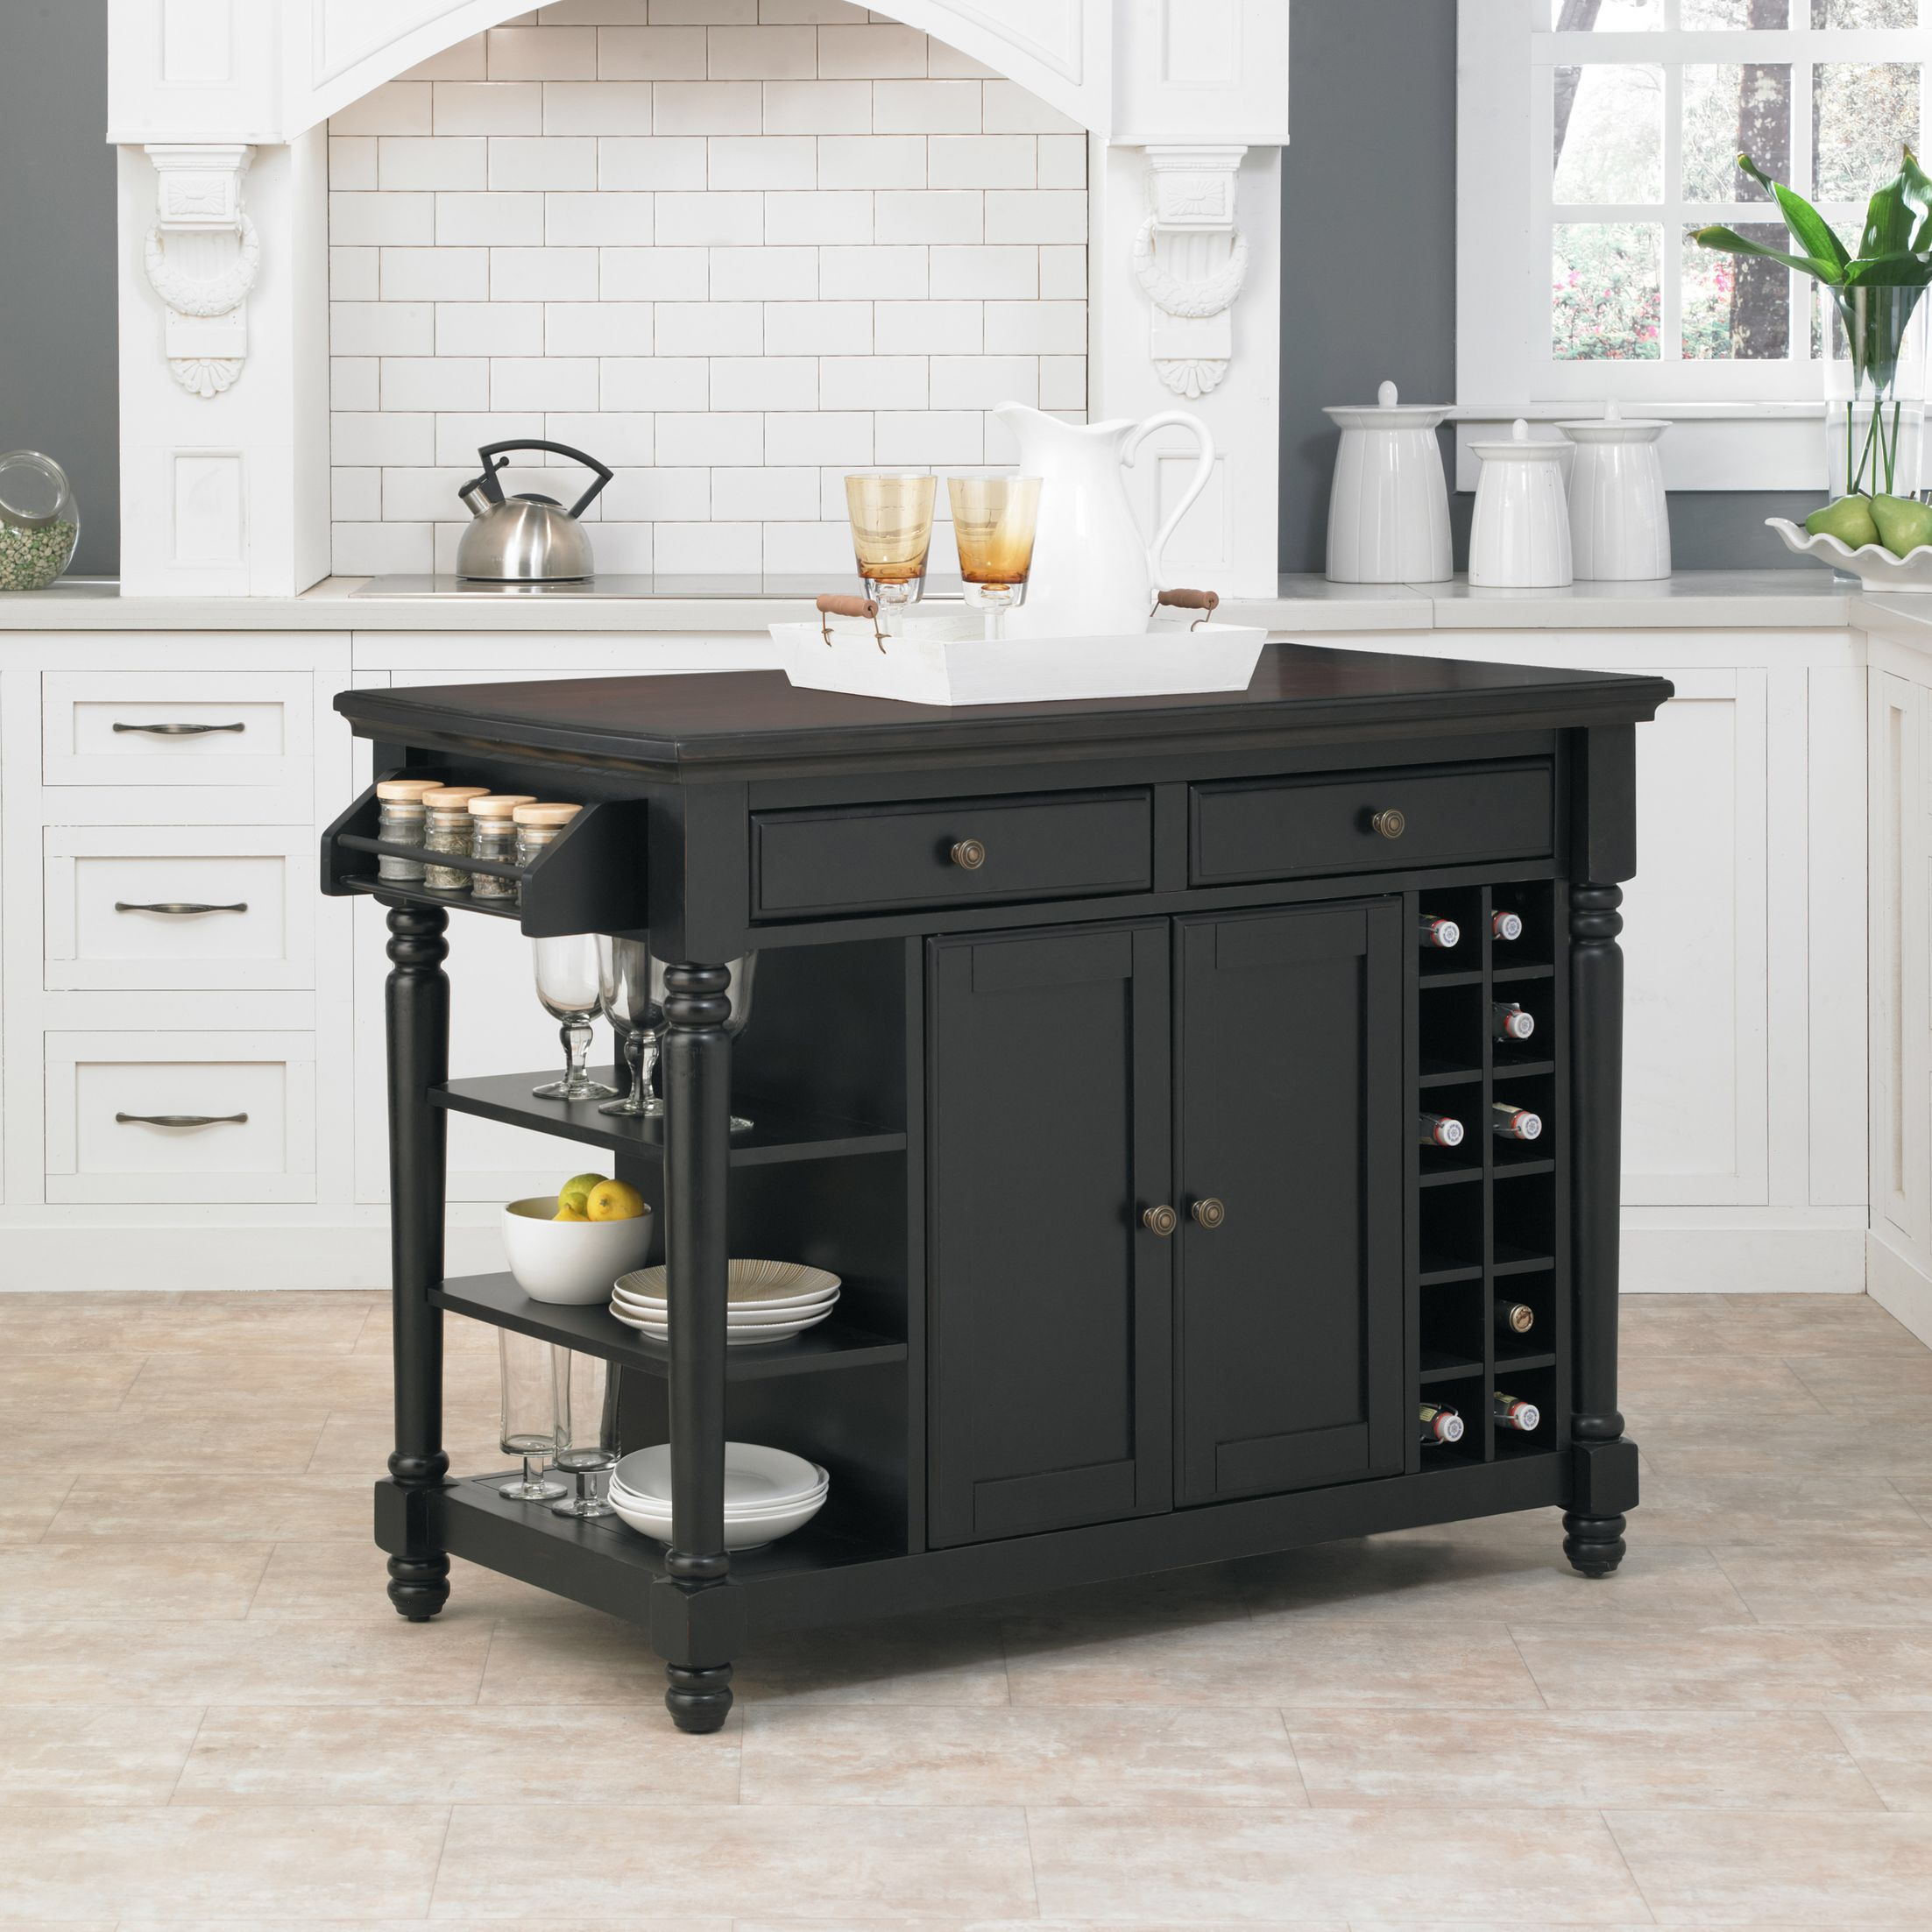 Grand Torino Kitchen Island | ~ Celeste kitchen ~ | Pinterest ...